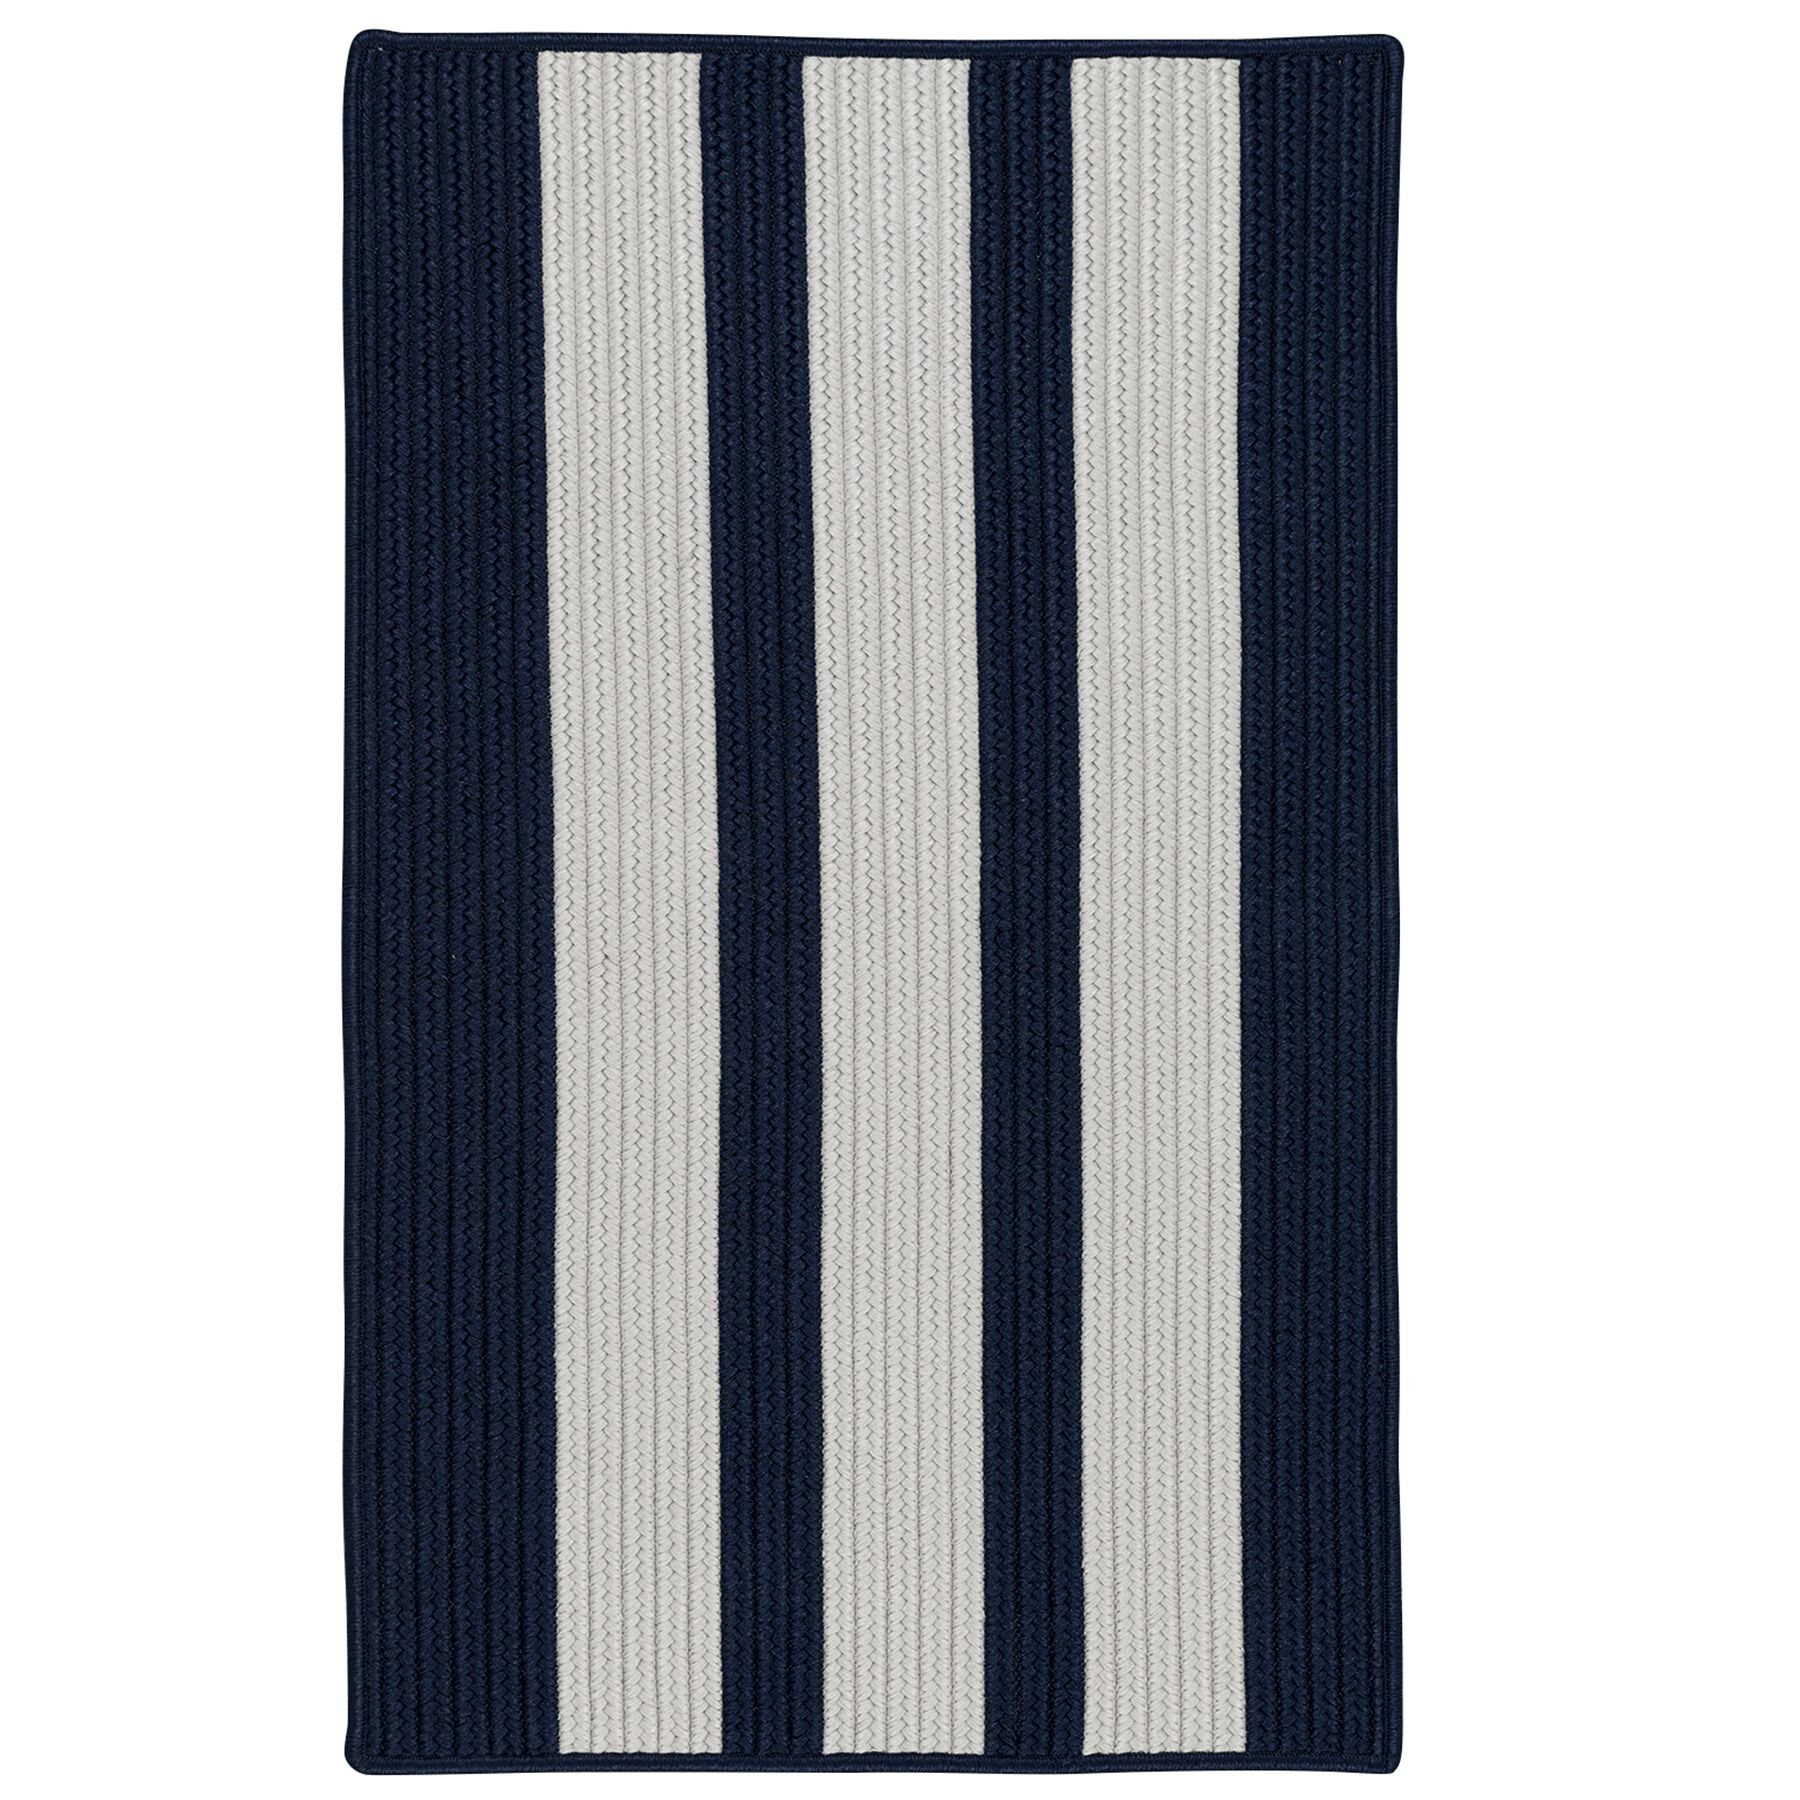 Wes Vertical Stripe Hand-Braided Gray/Navy Pier Indoor/Outdoor Area Rug Rug Size: Rectangle 2' x 4'